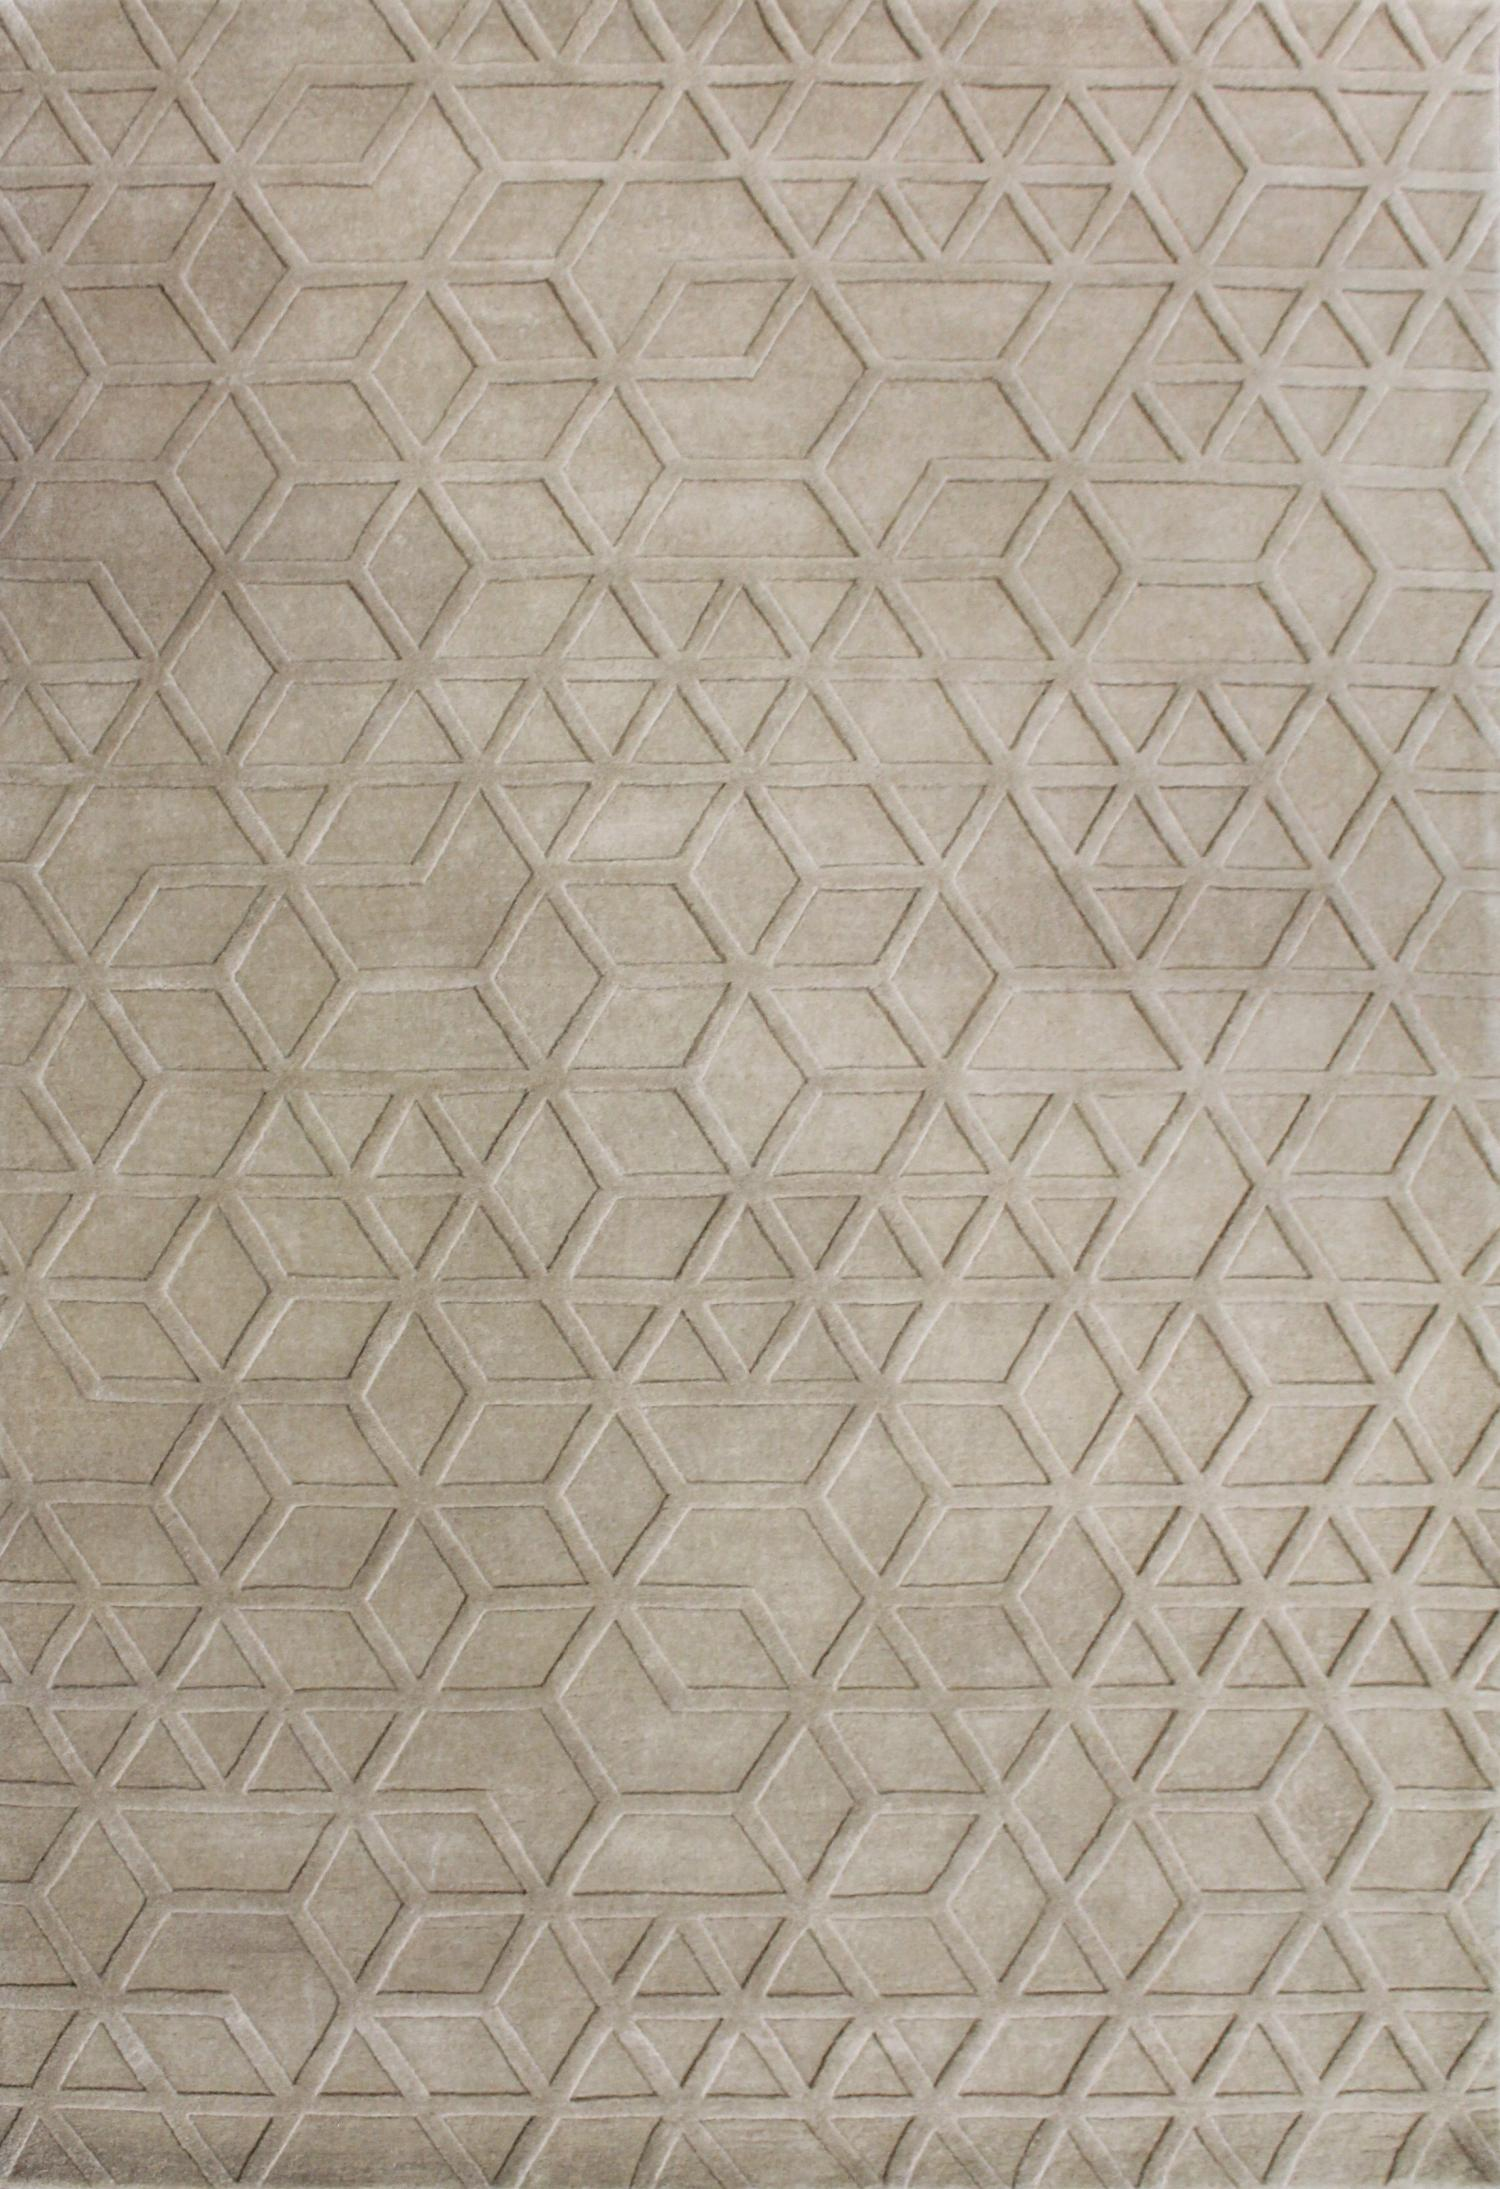 lima-hand-tuffed-nz-wool-blend-textured-rugs-perth-stans-biscuit-raised